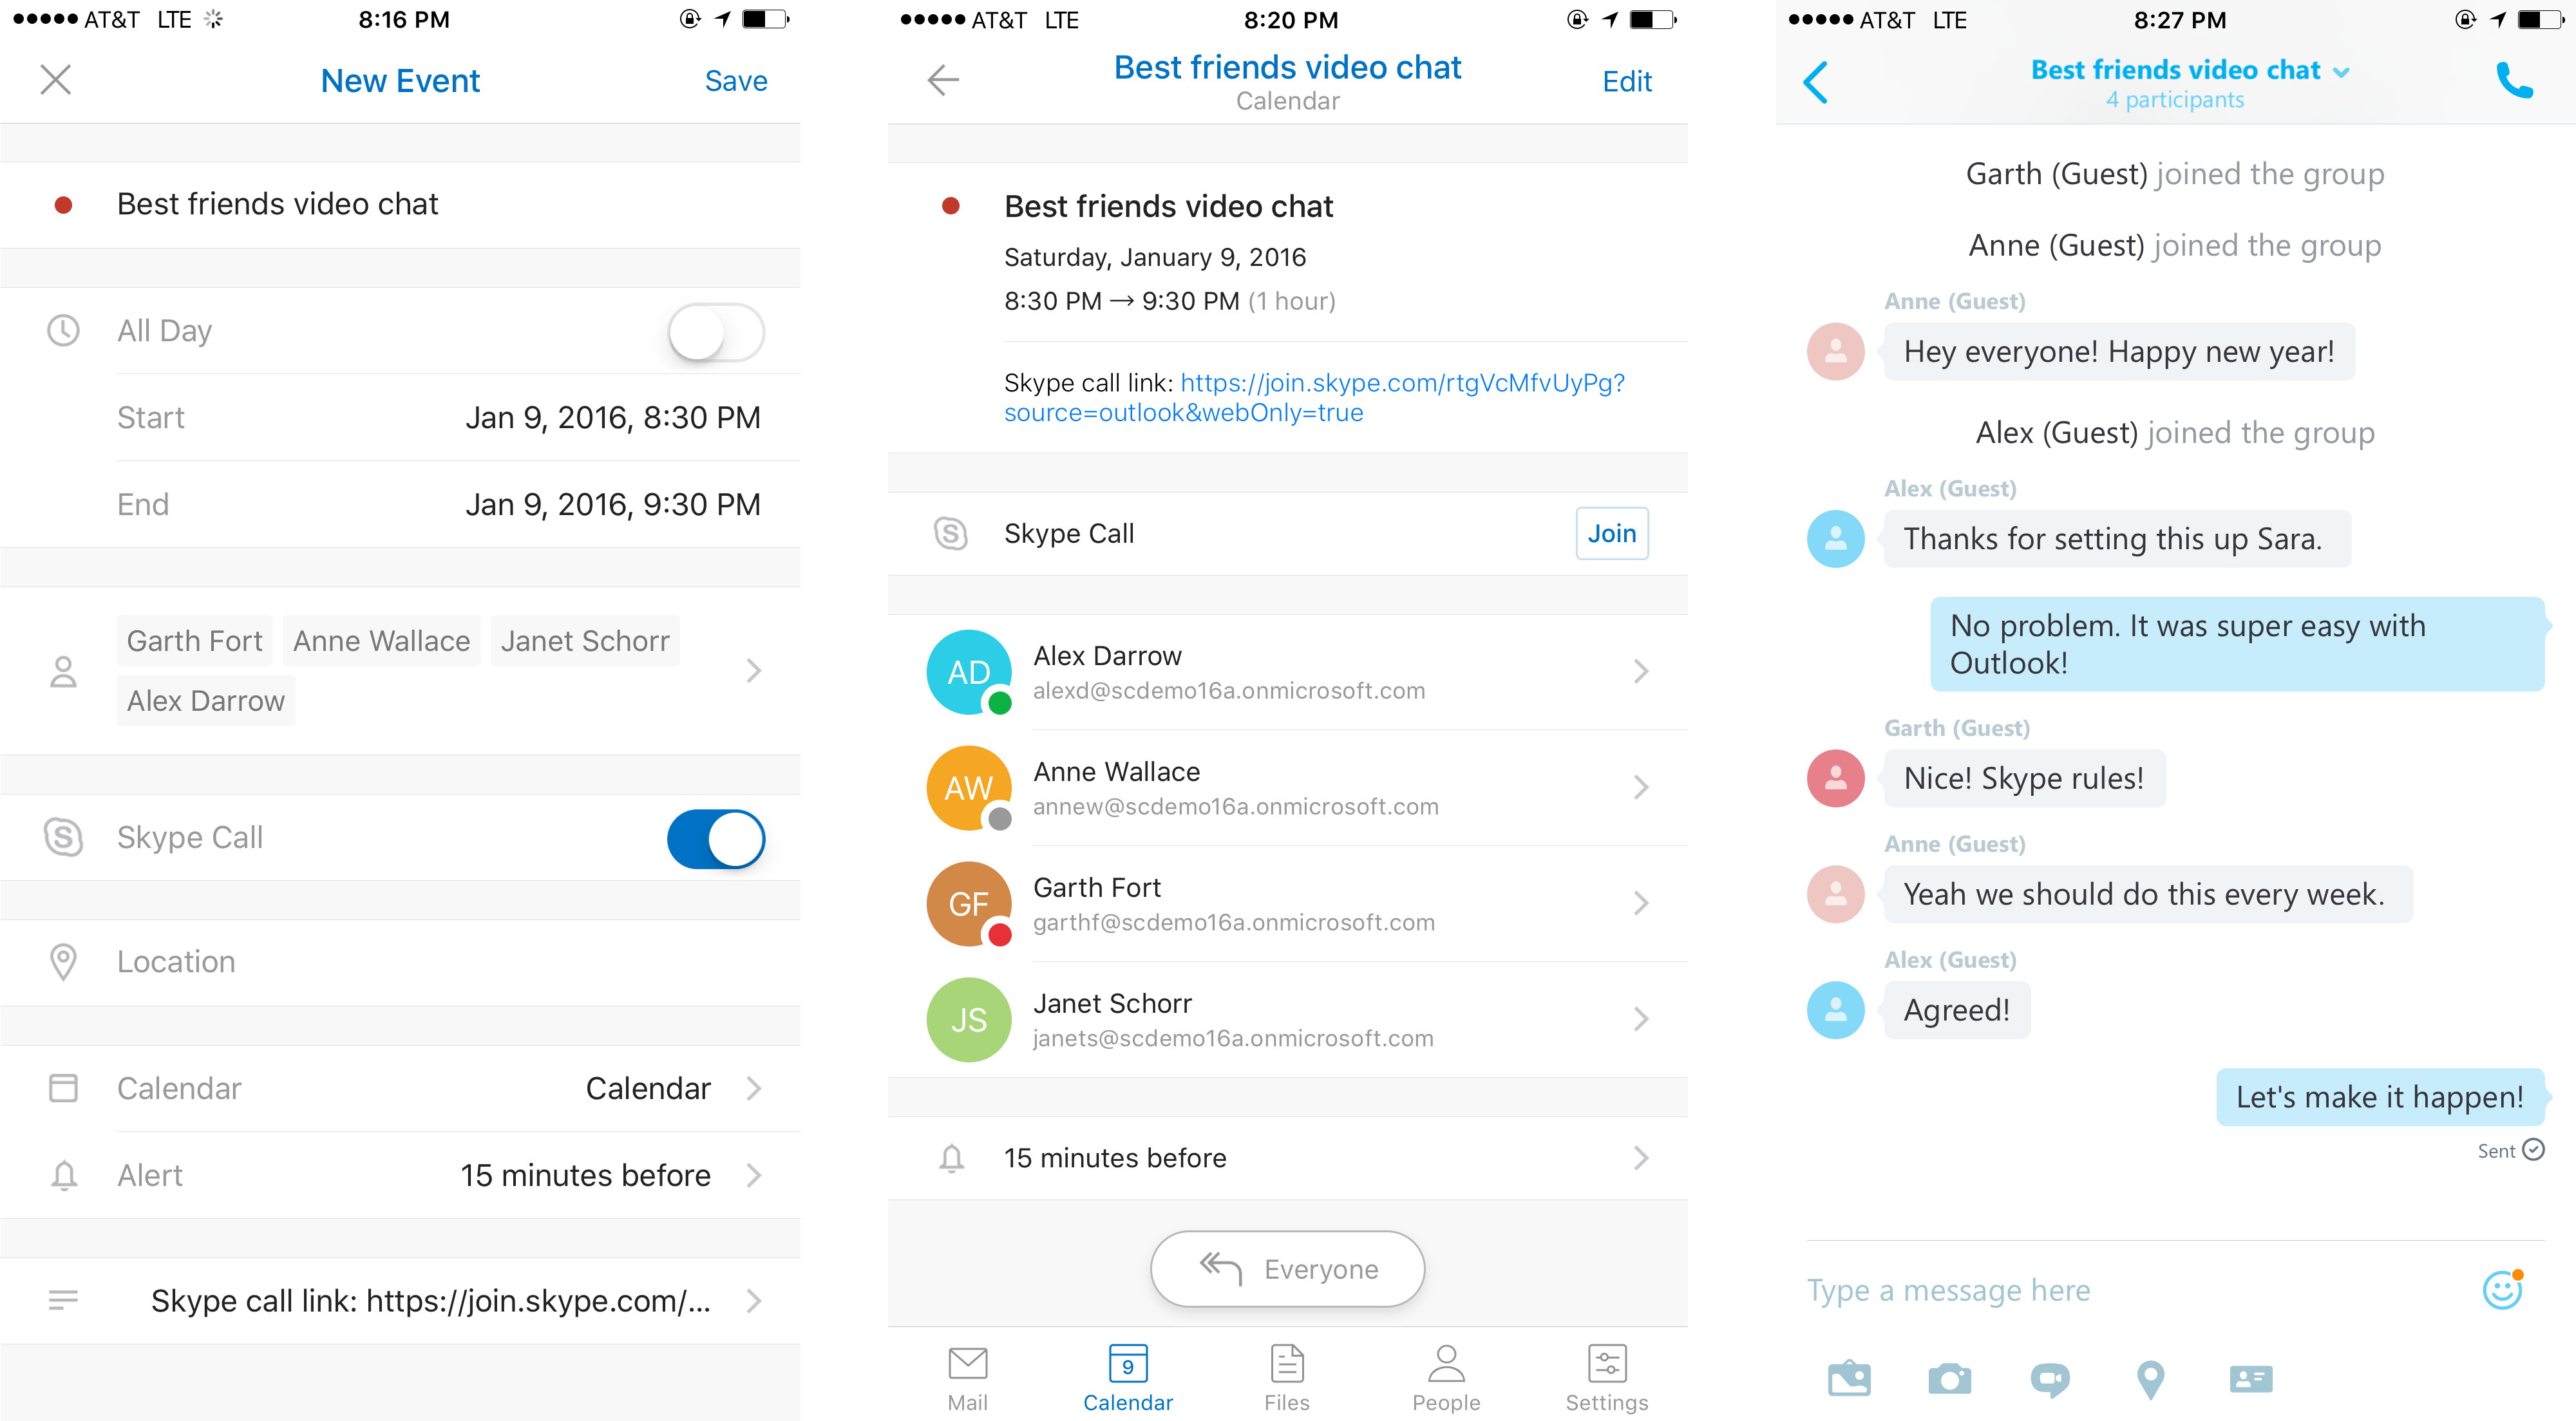 Skype call scheduling and more updates for Outlook for iOS